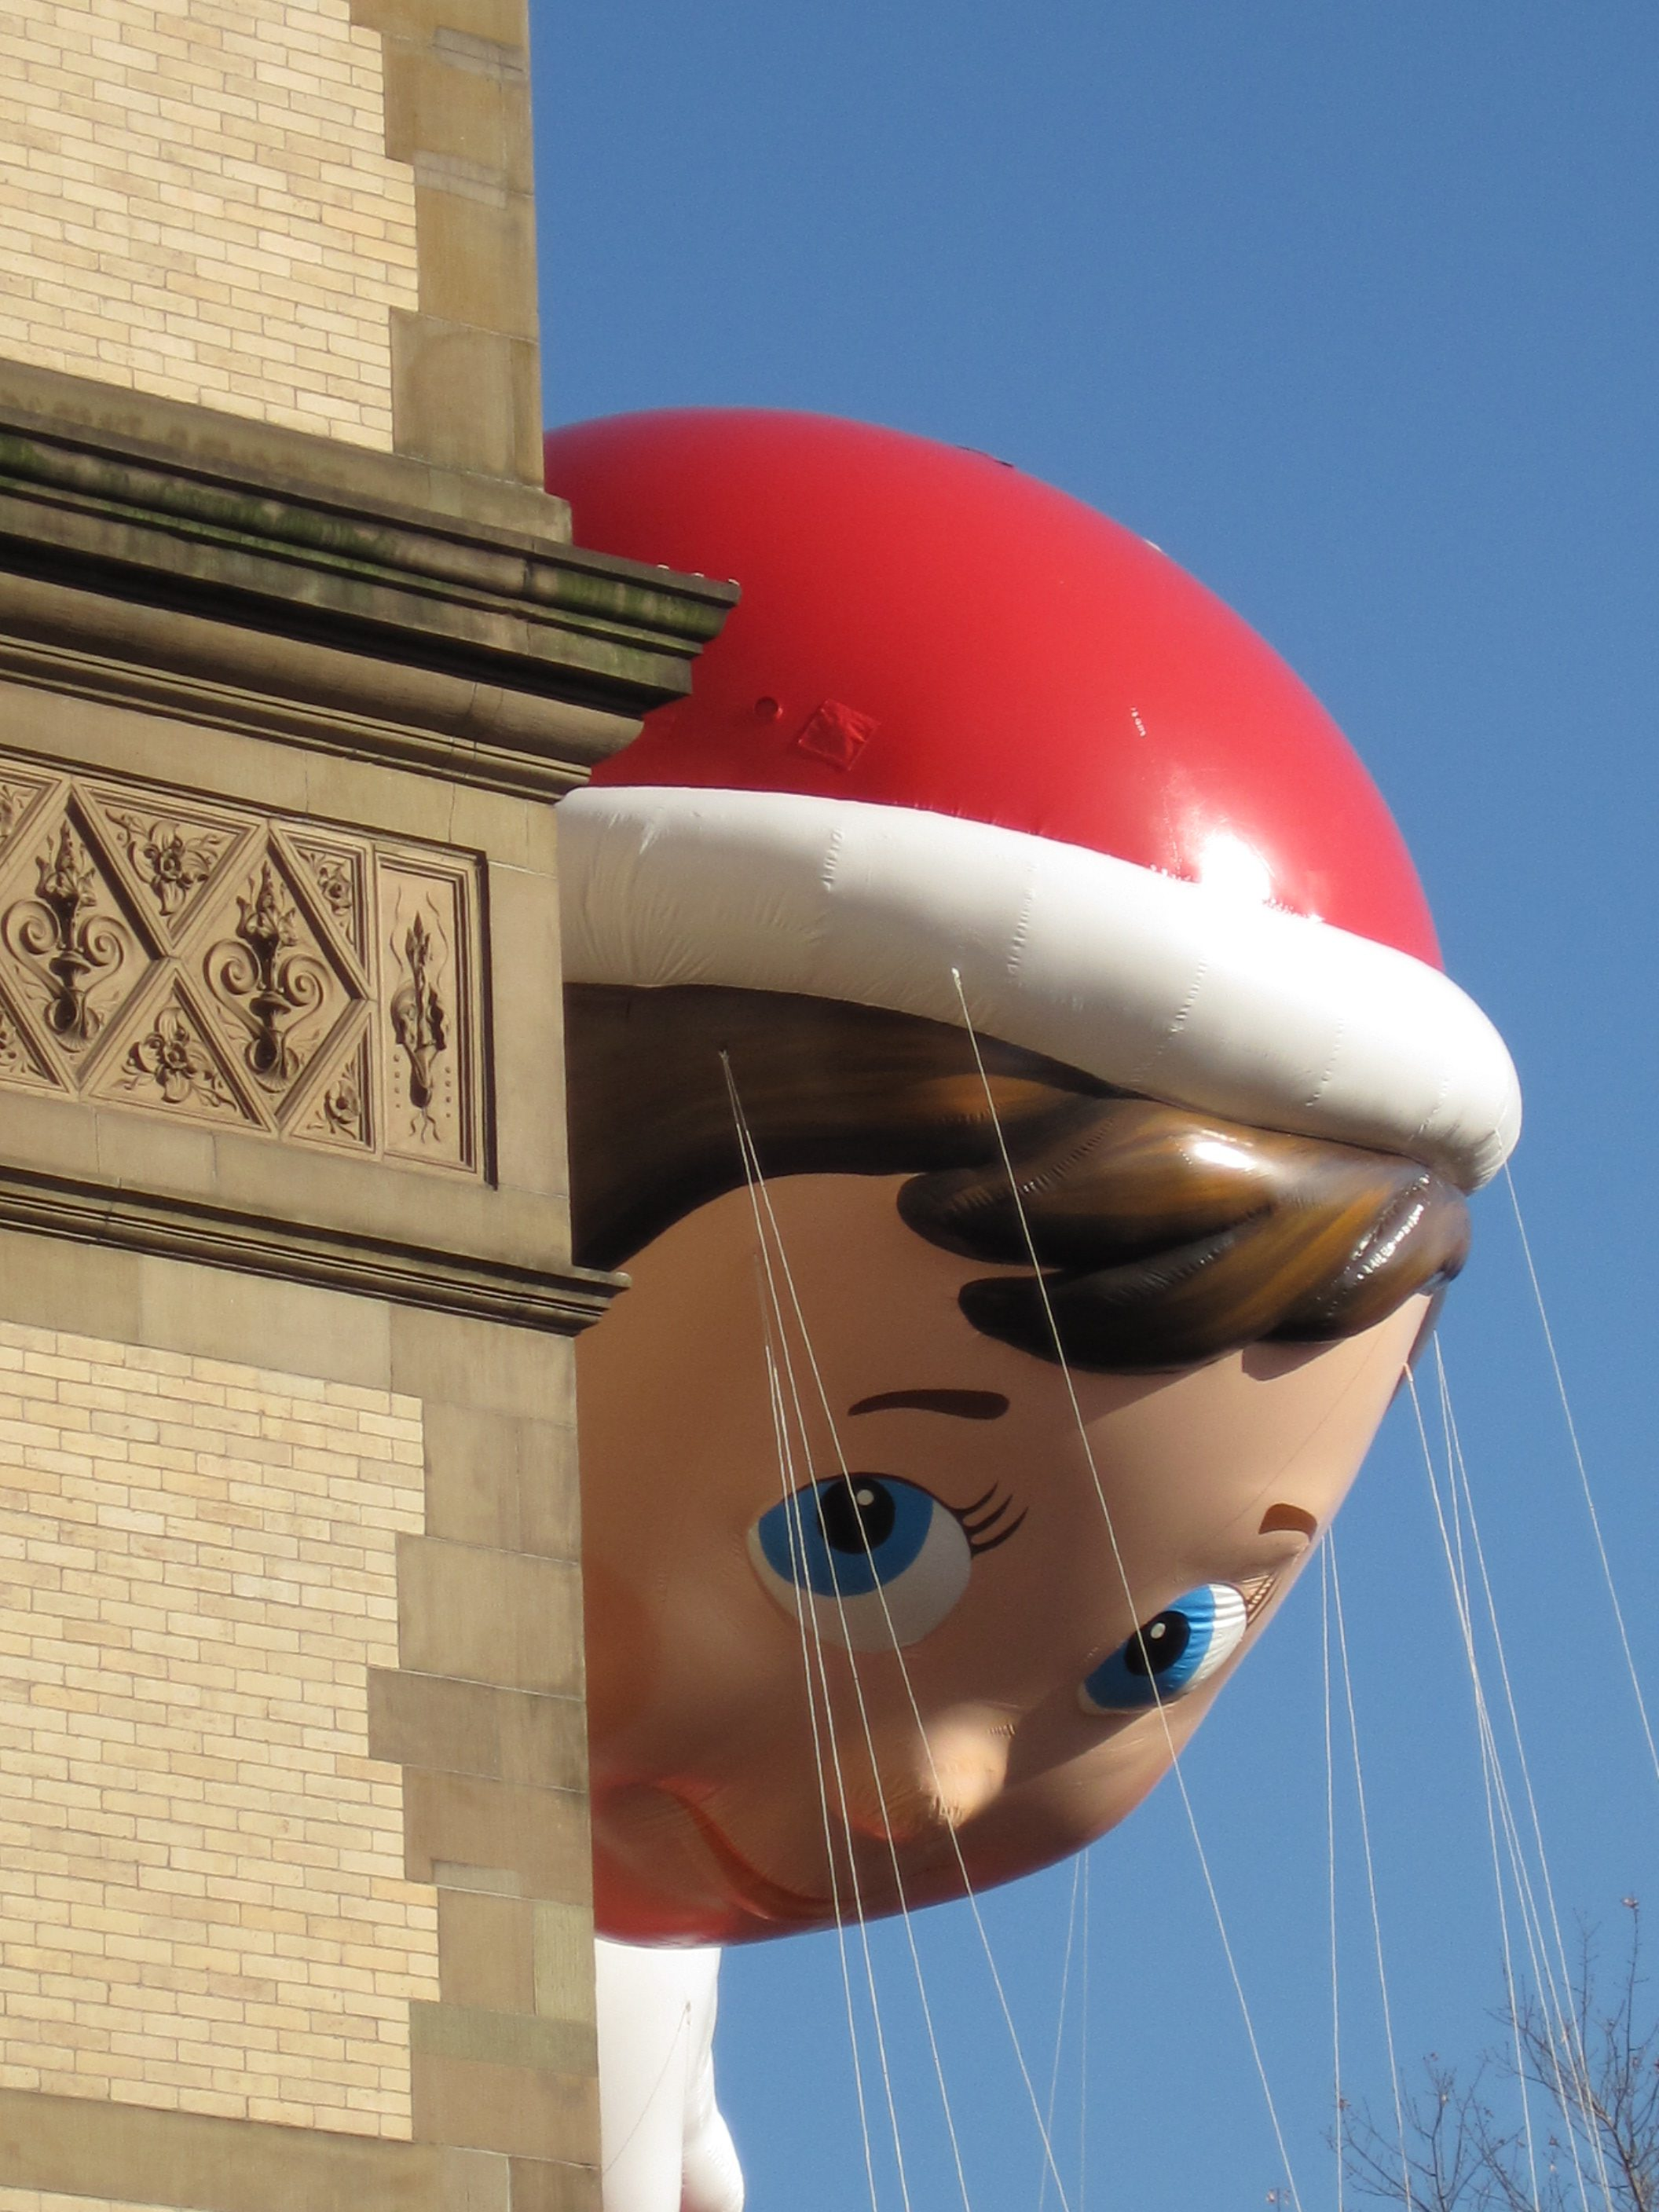 Elf on the Shelf Balloon. Photo by Kim on Flickr https://www.flickr.com/photos/thegirlsny/8208193899